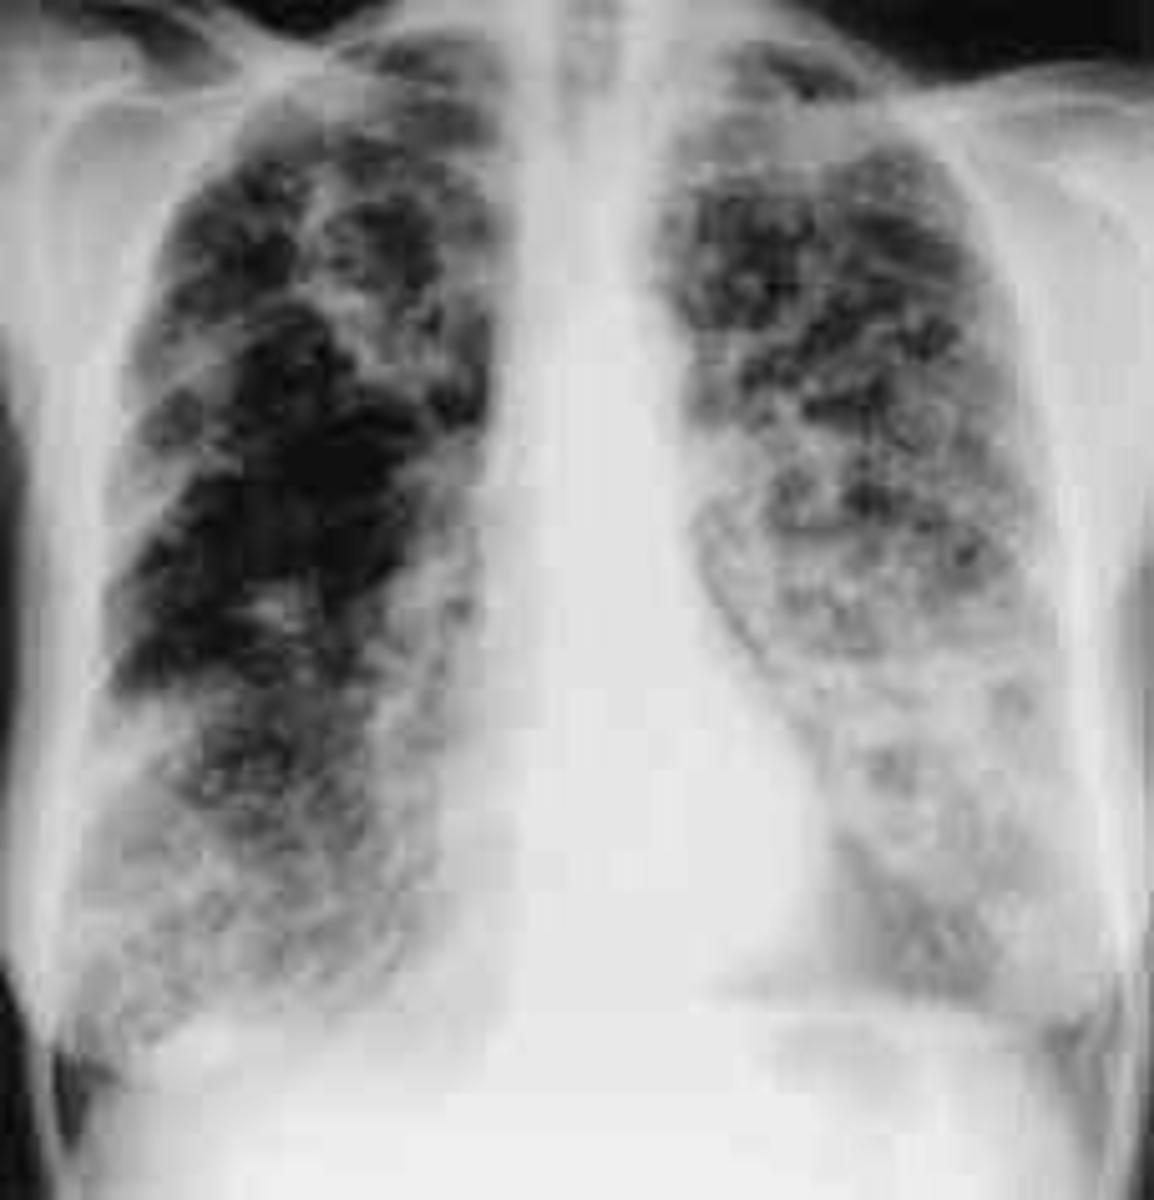 Lung disease results from clogging of the airways due to mucus build-up, decreased mucociliary clearance, and resulting inflammation. Inflammation and infection cause injury and structural changes to the lungs, leading to a variety of symptom